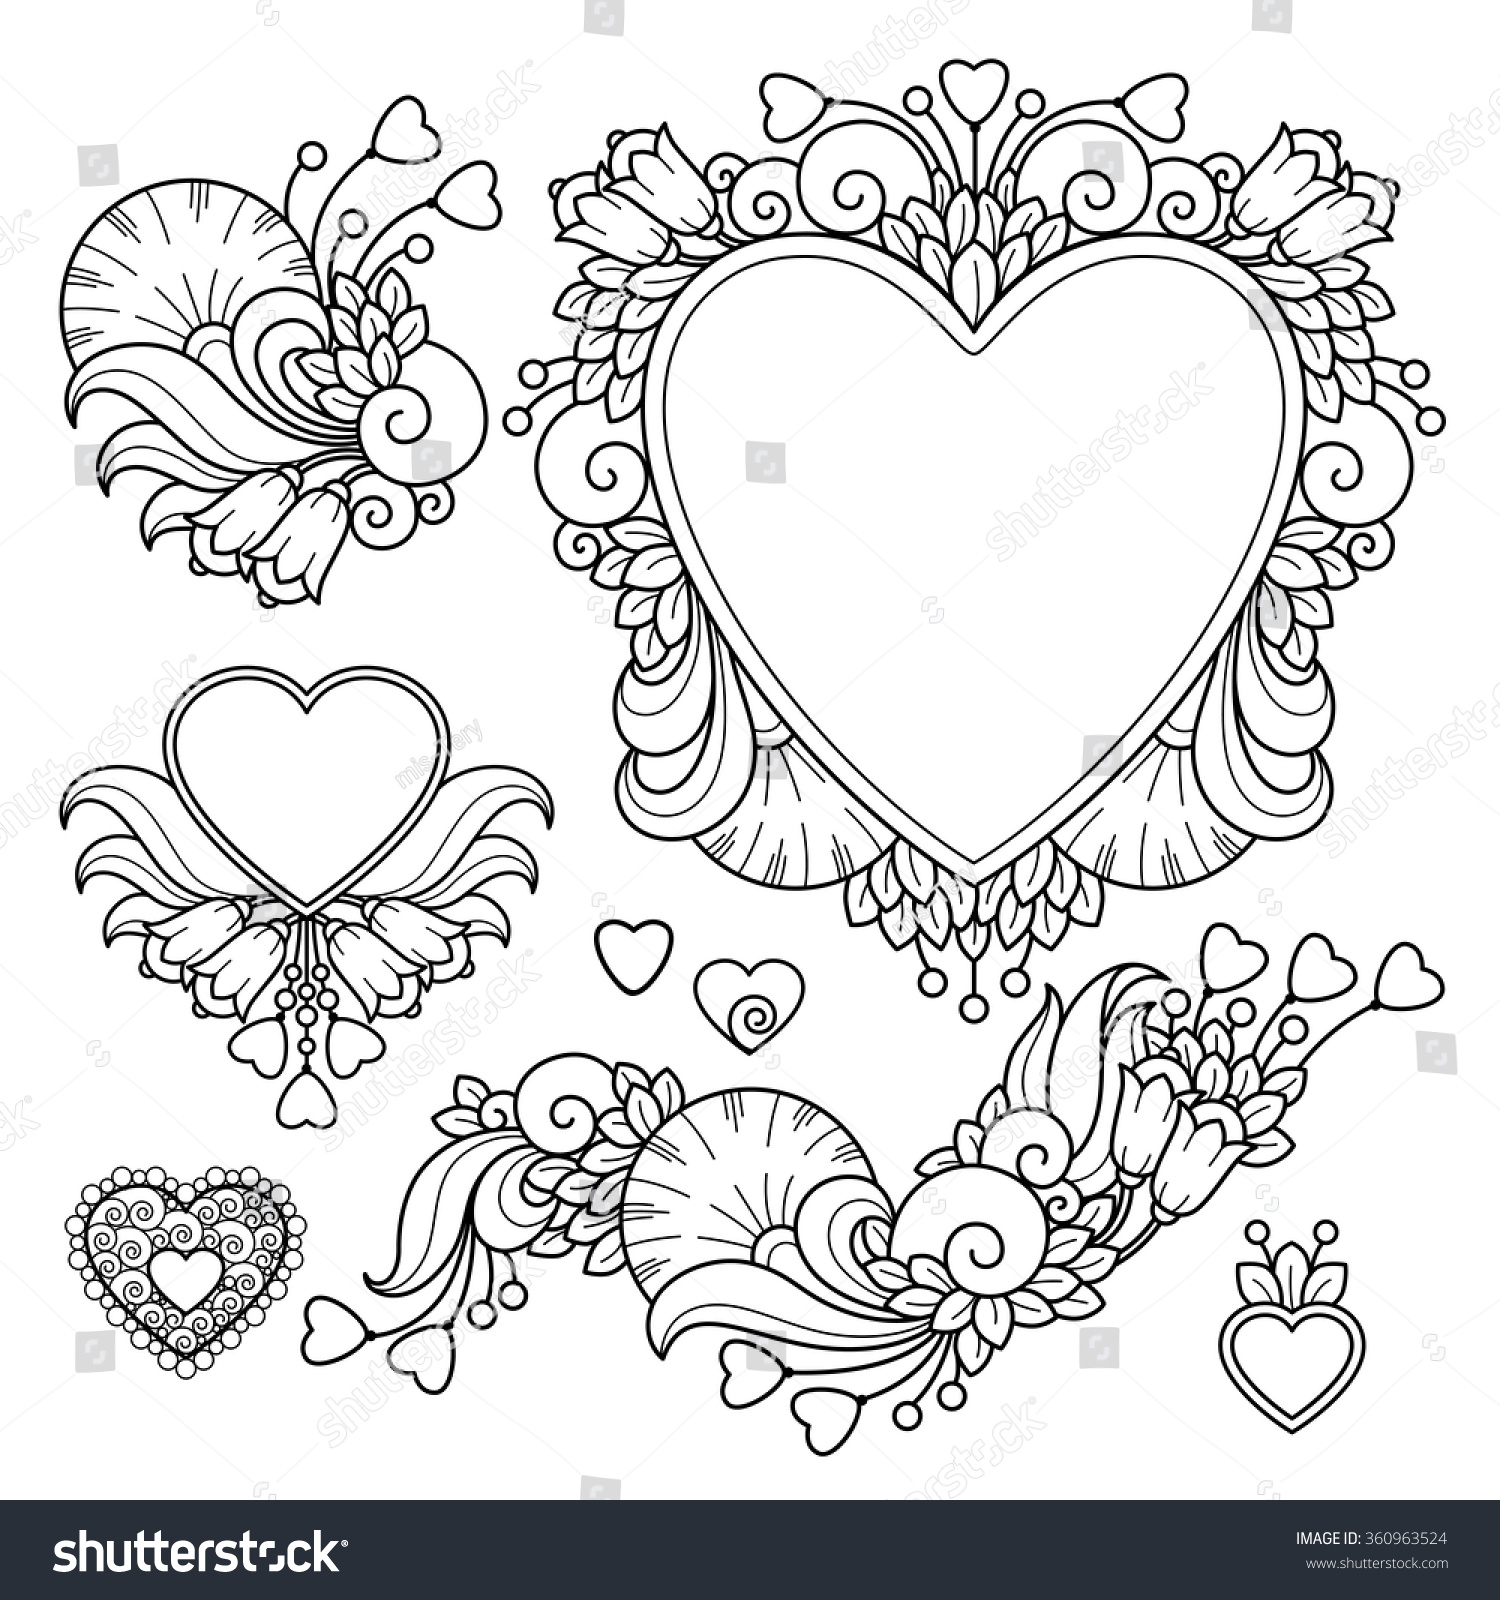 Vector Set Love Valentines Day Abstract Elements In Doodle Style Floral Nature Ornate Decorative Heart Compositions Black And White Monochrome